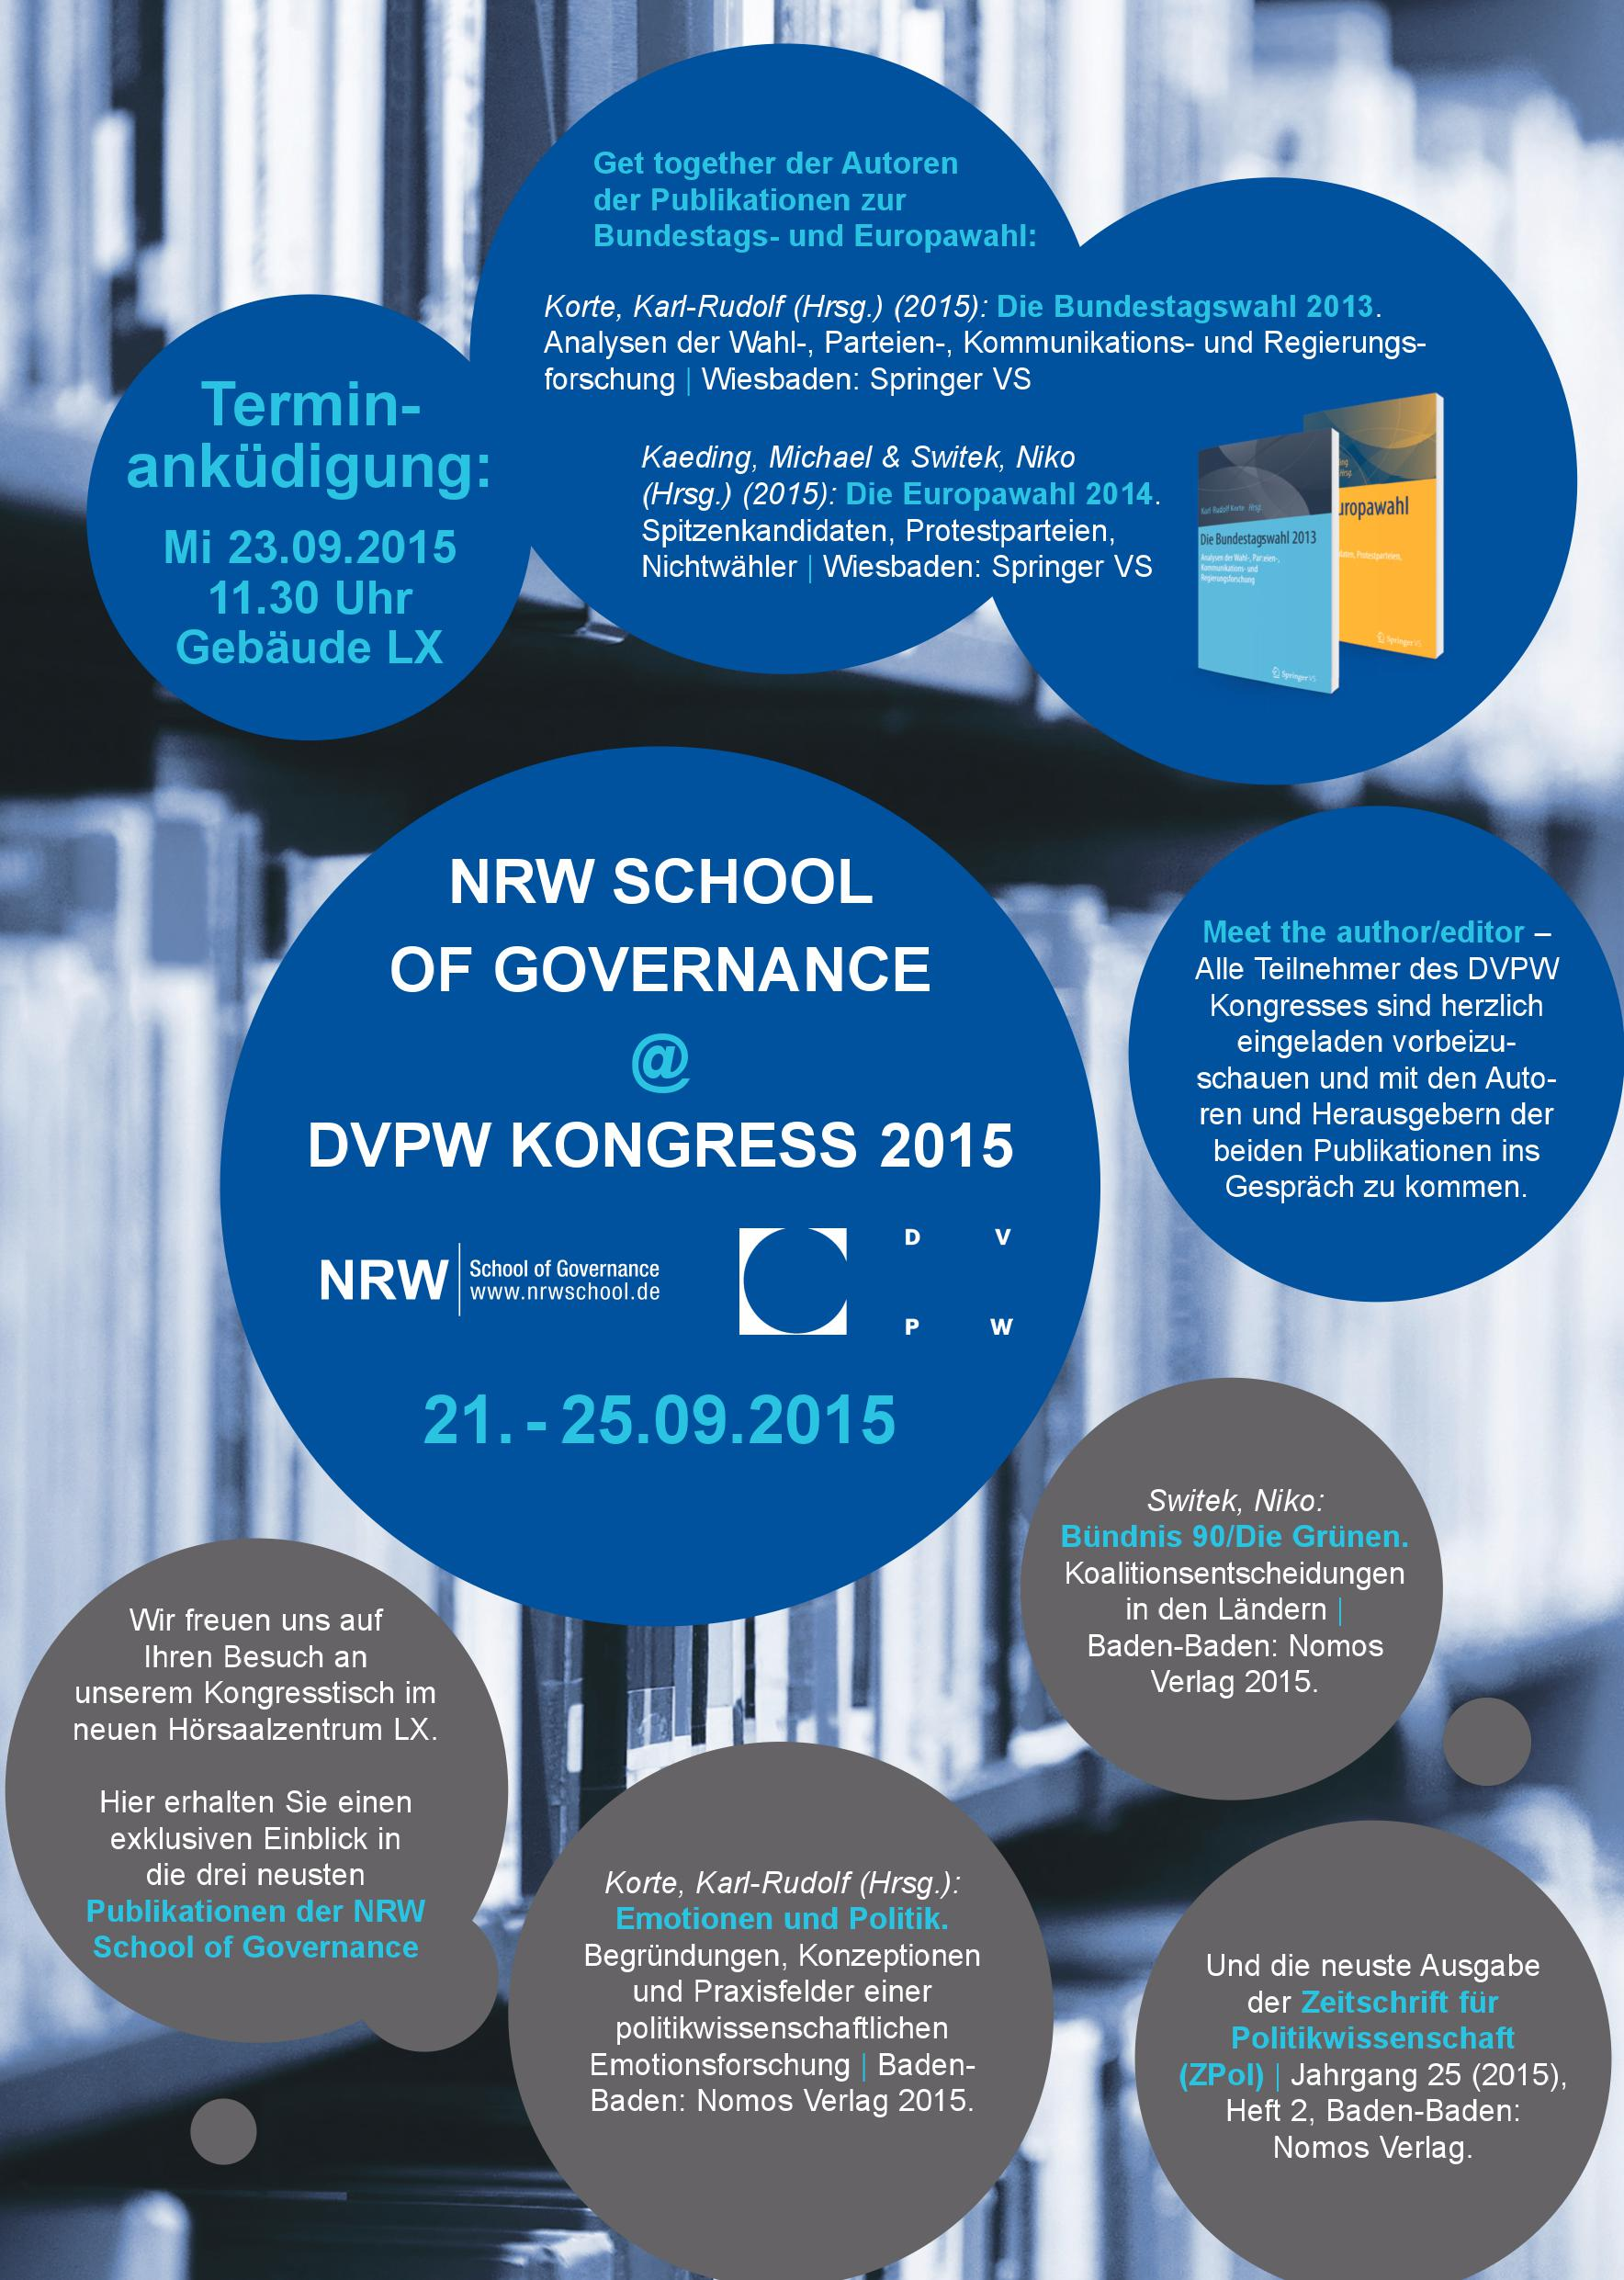 NRW School @ DVPW Kongress 2015 (2)